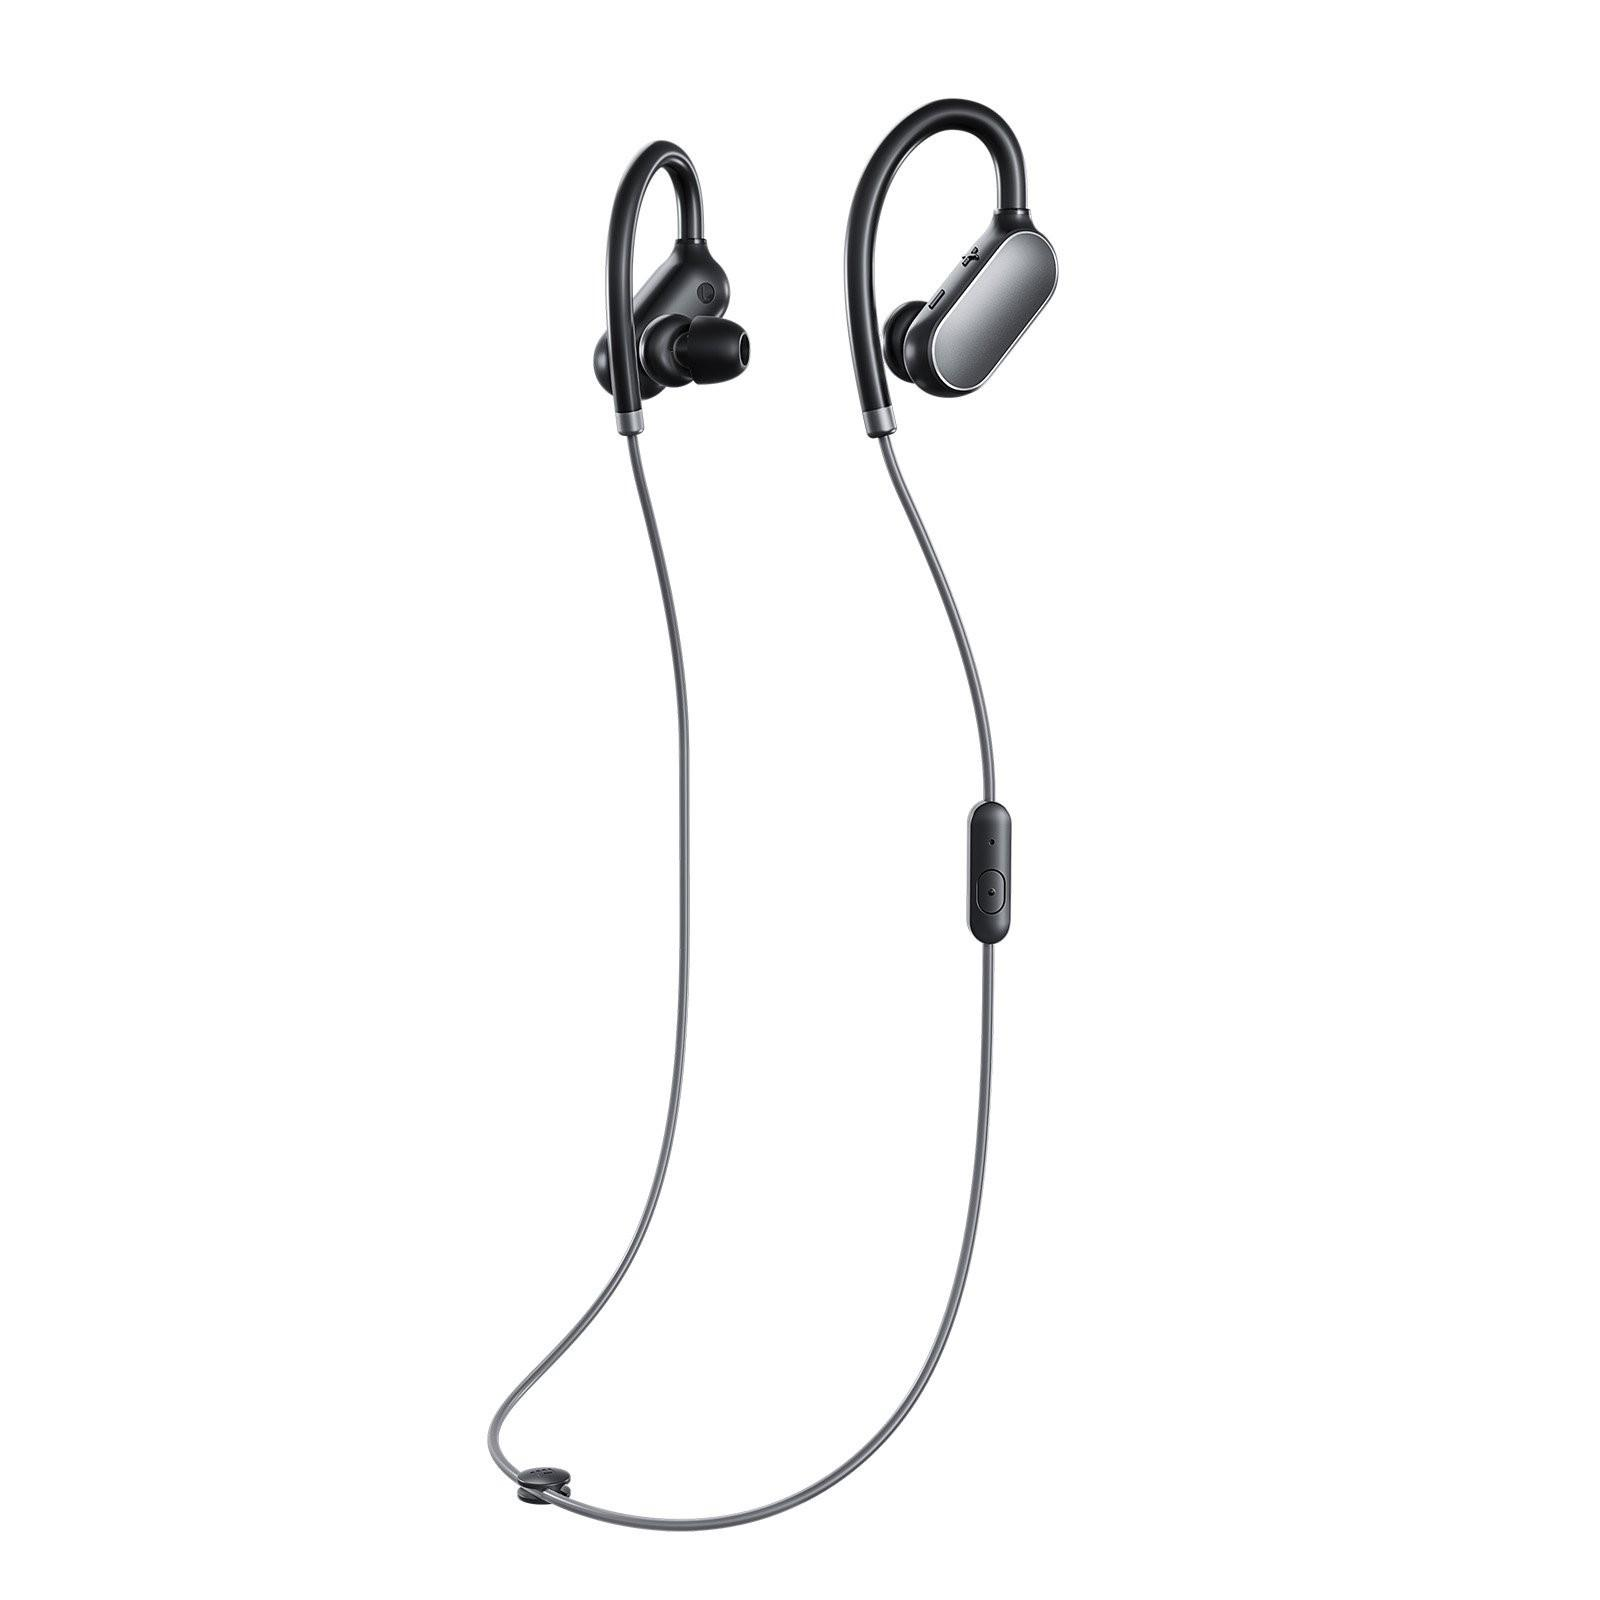 e4abb0605f8 Buy Xiaomi,ONN Over-The-Ear Headphones at Best Prices Online in Sri ...